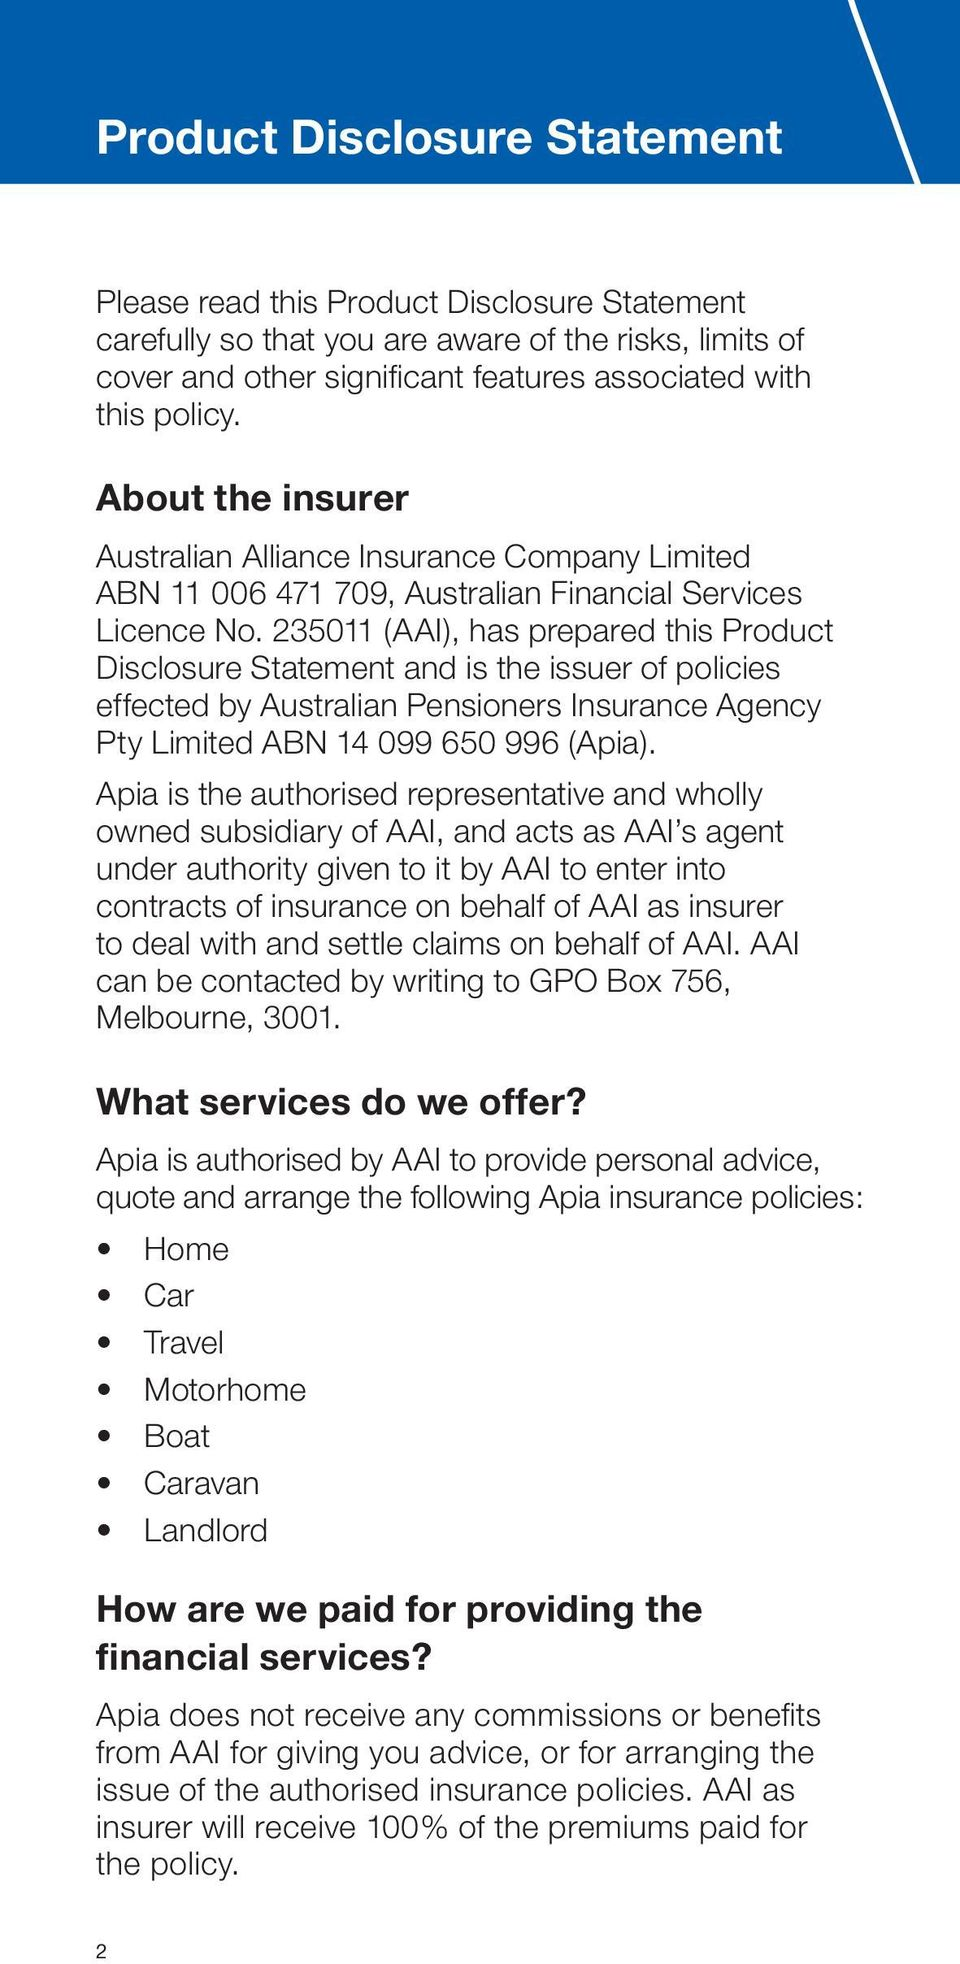 235011 (AAI), has prepared this Product Disclosure Statement and is the issuer of policies effected by Australian Pensioners Insurance Agency Pty Limited ABN 14 099 650 996 (Apia).